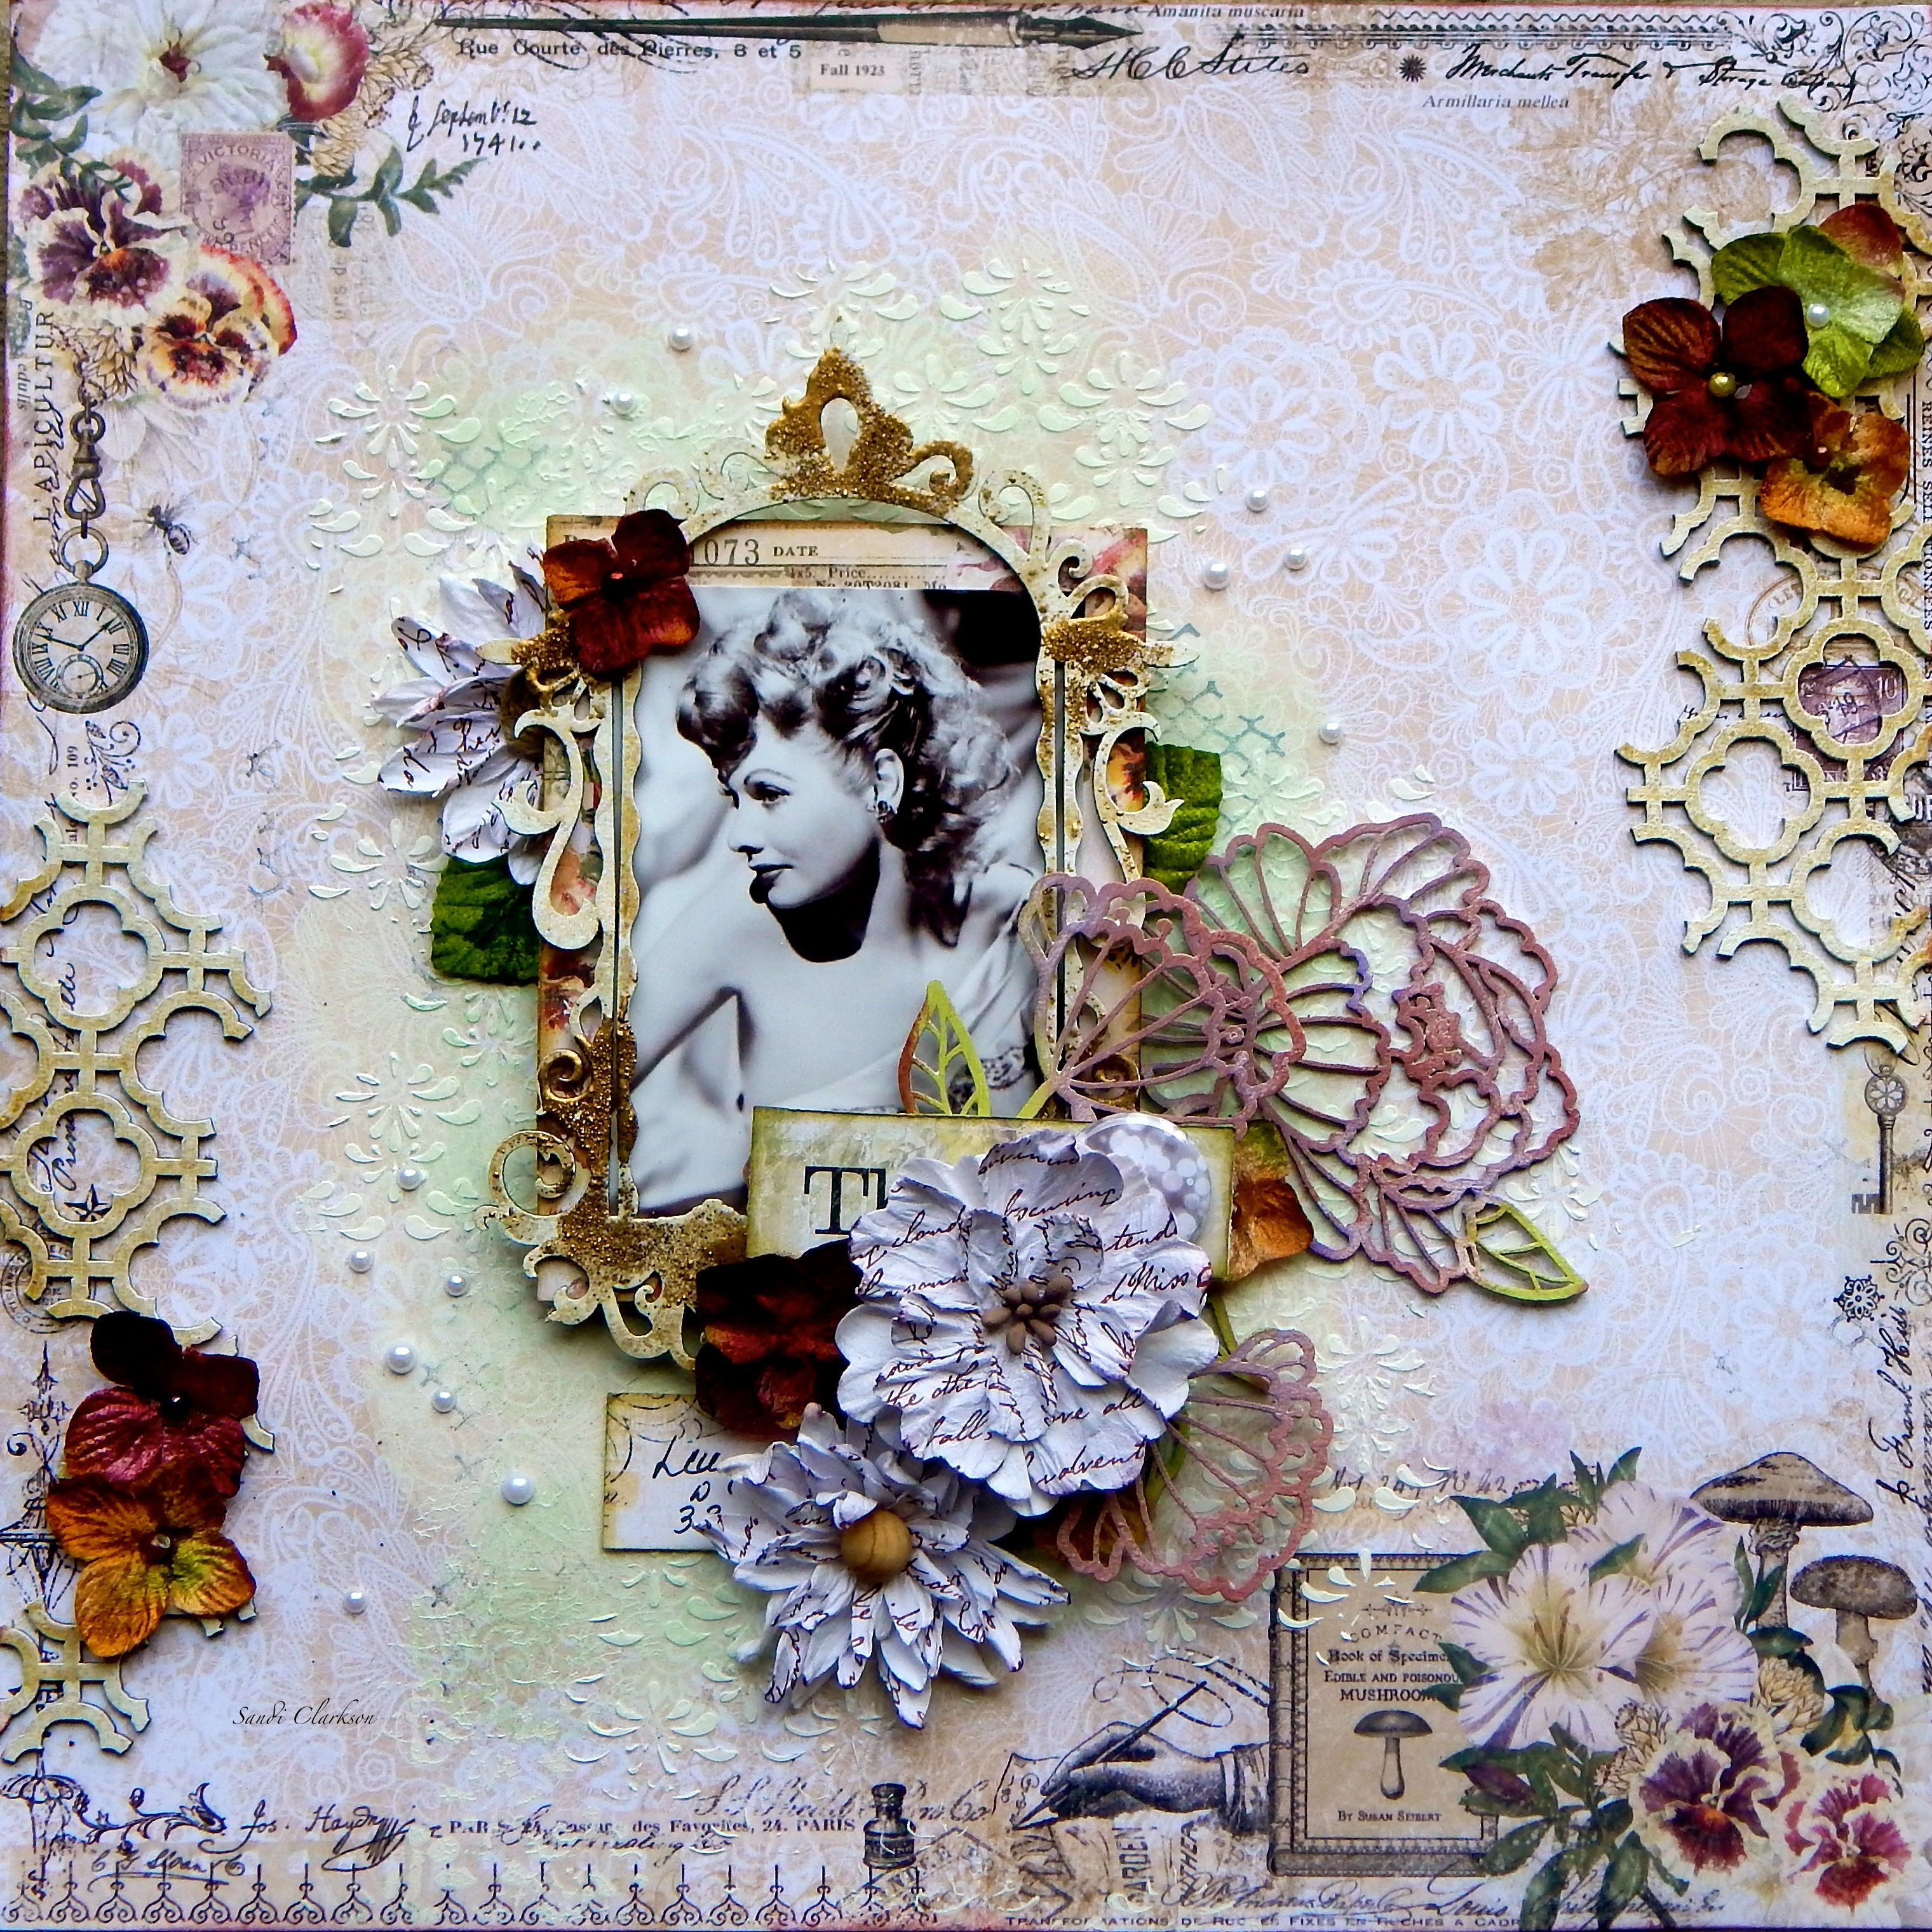 Blue Fern Studios ~ Lucy @ 33 - Blue Fern Studios using the new Autumn Anthology collection